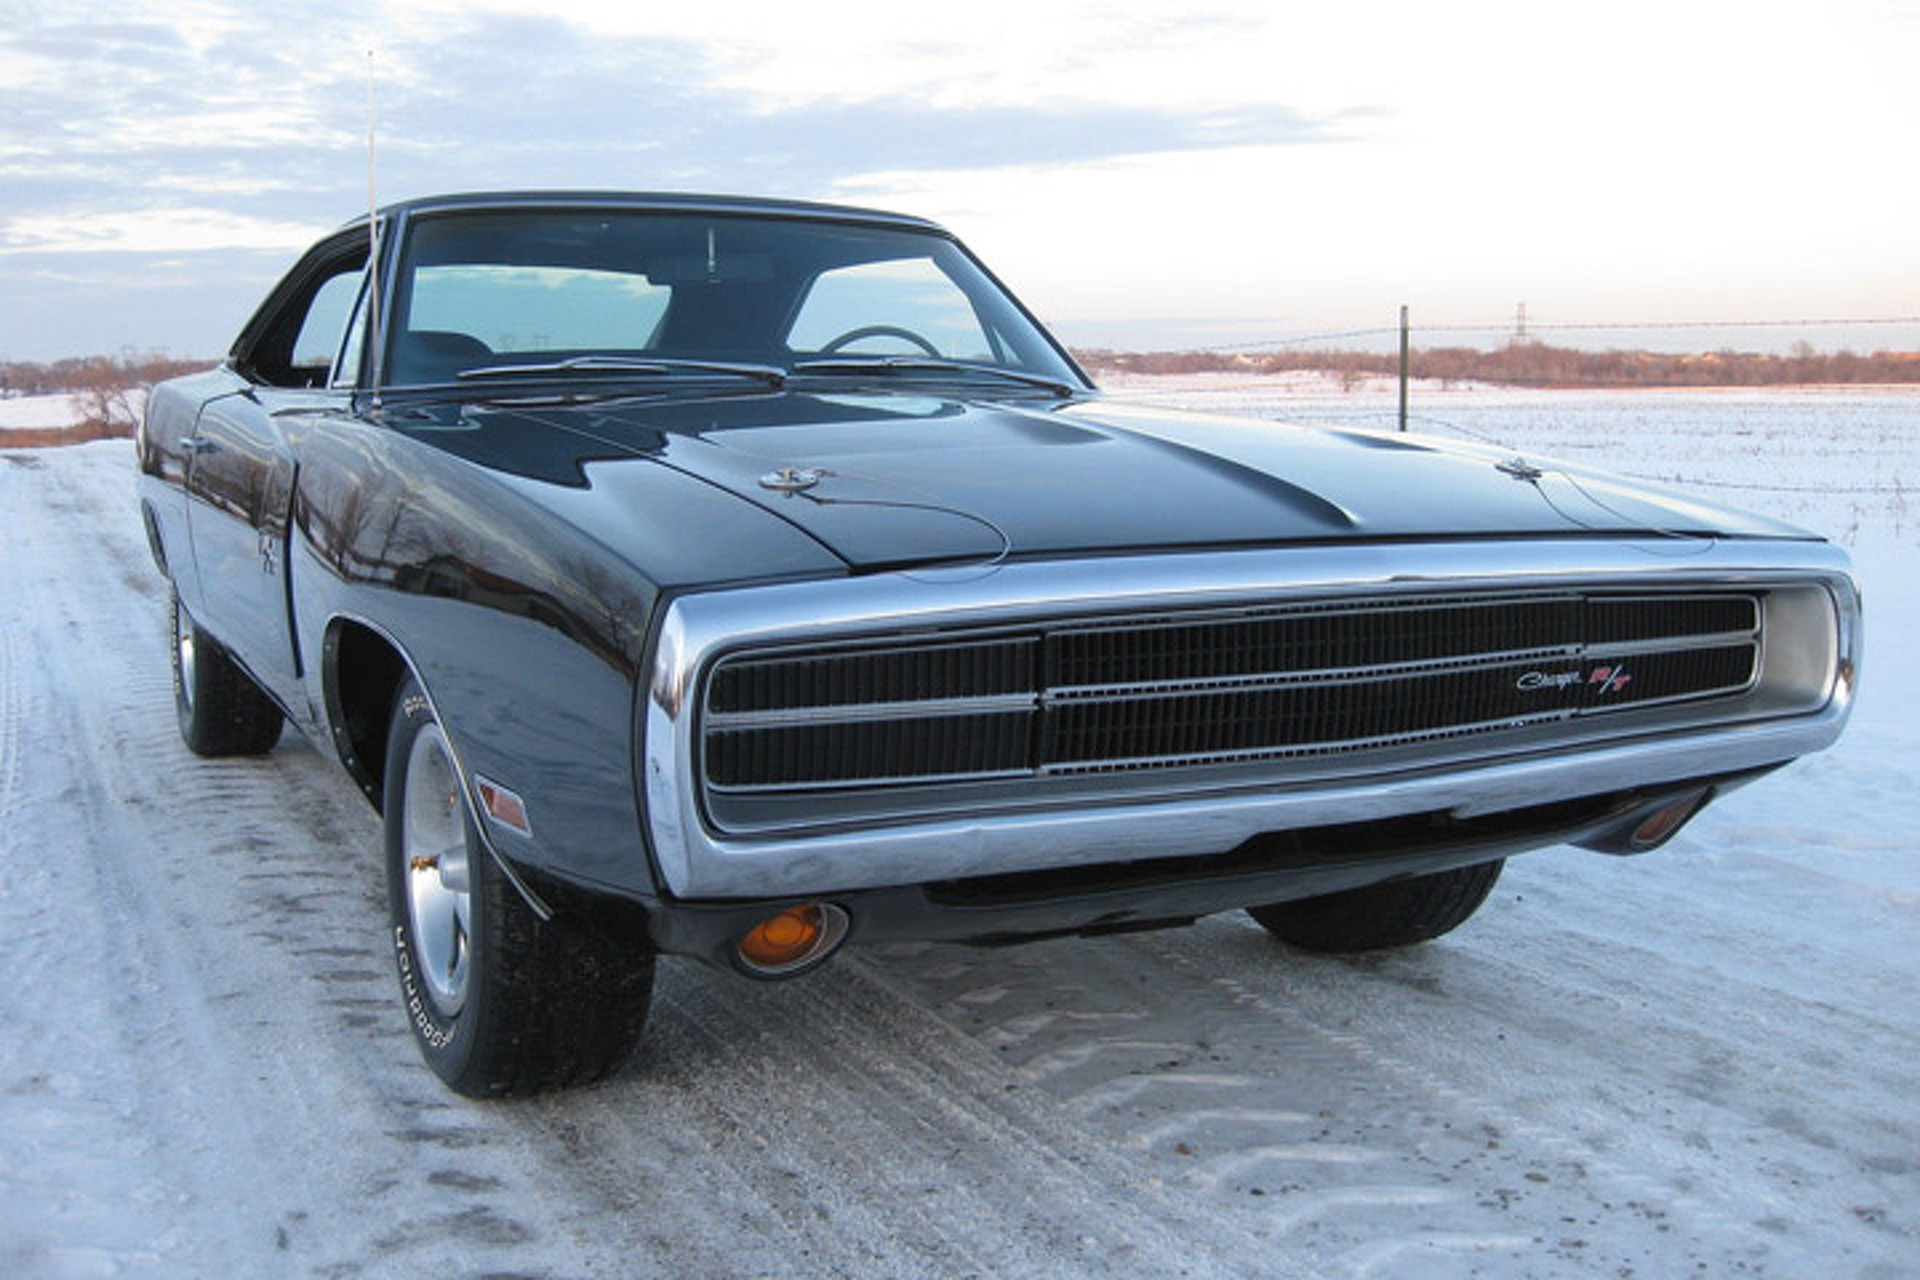 1970 Dodge Charger Or Challenger Which Would You Buy